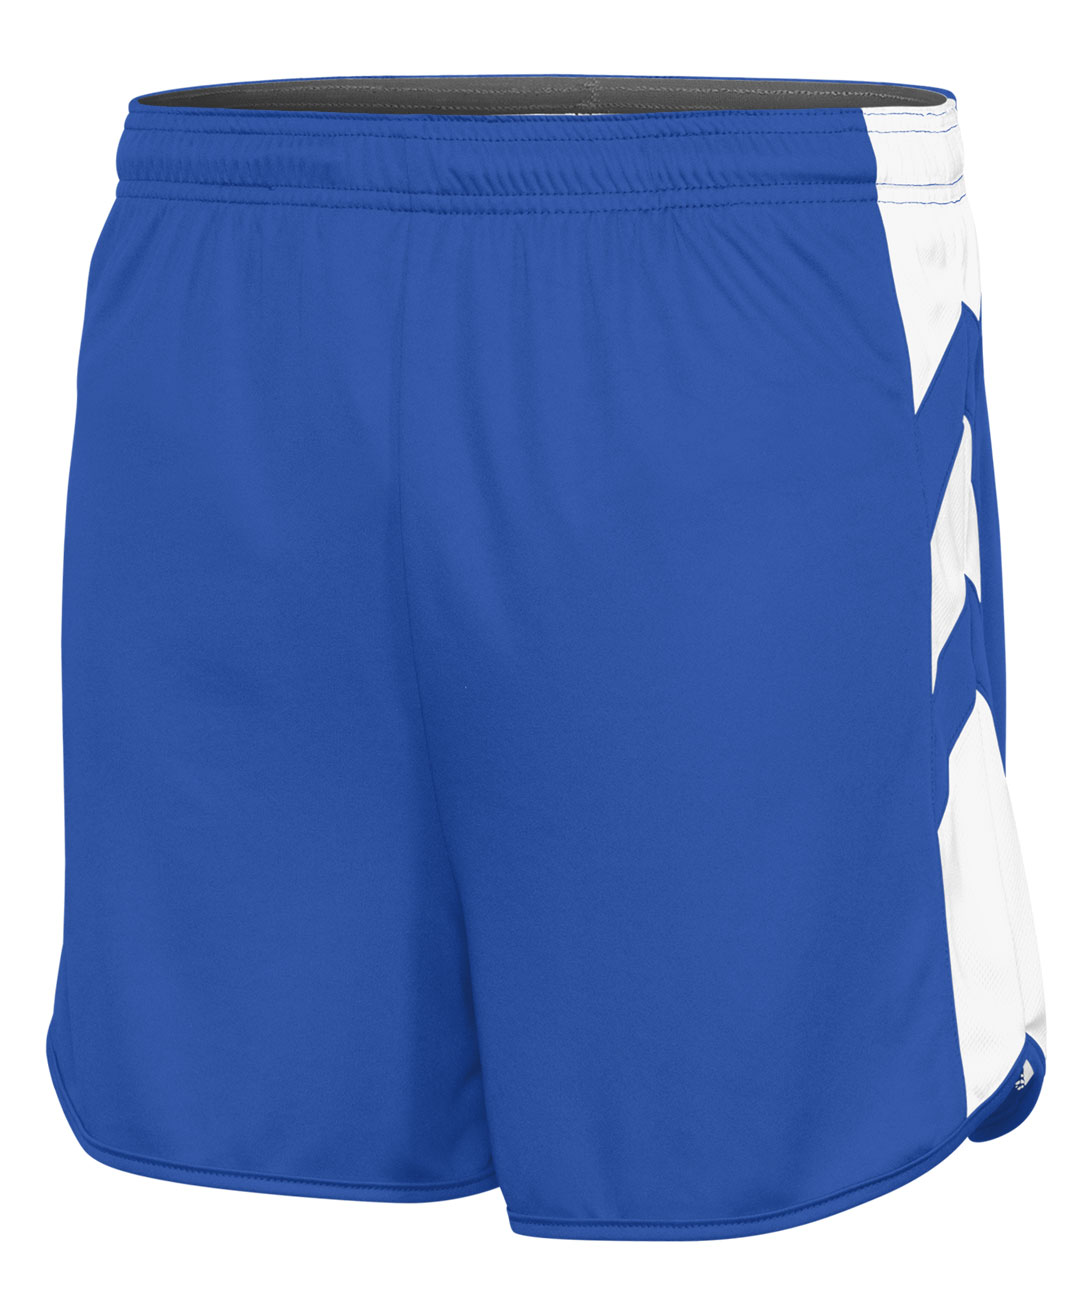 Womens Champion Stride Short